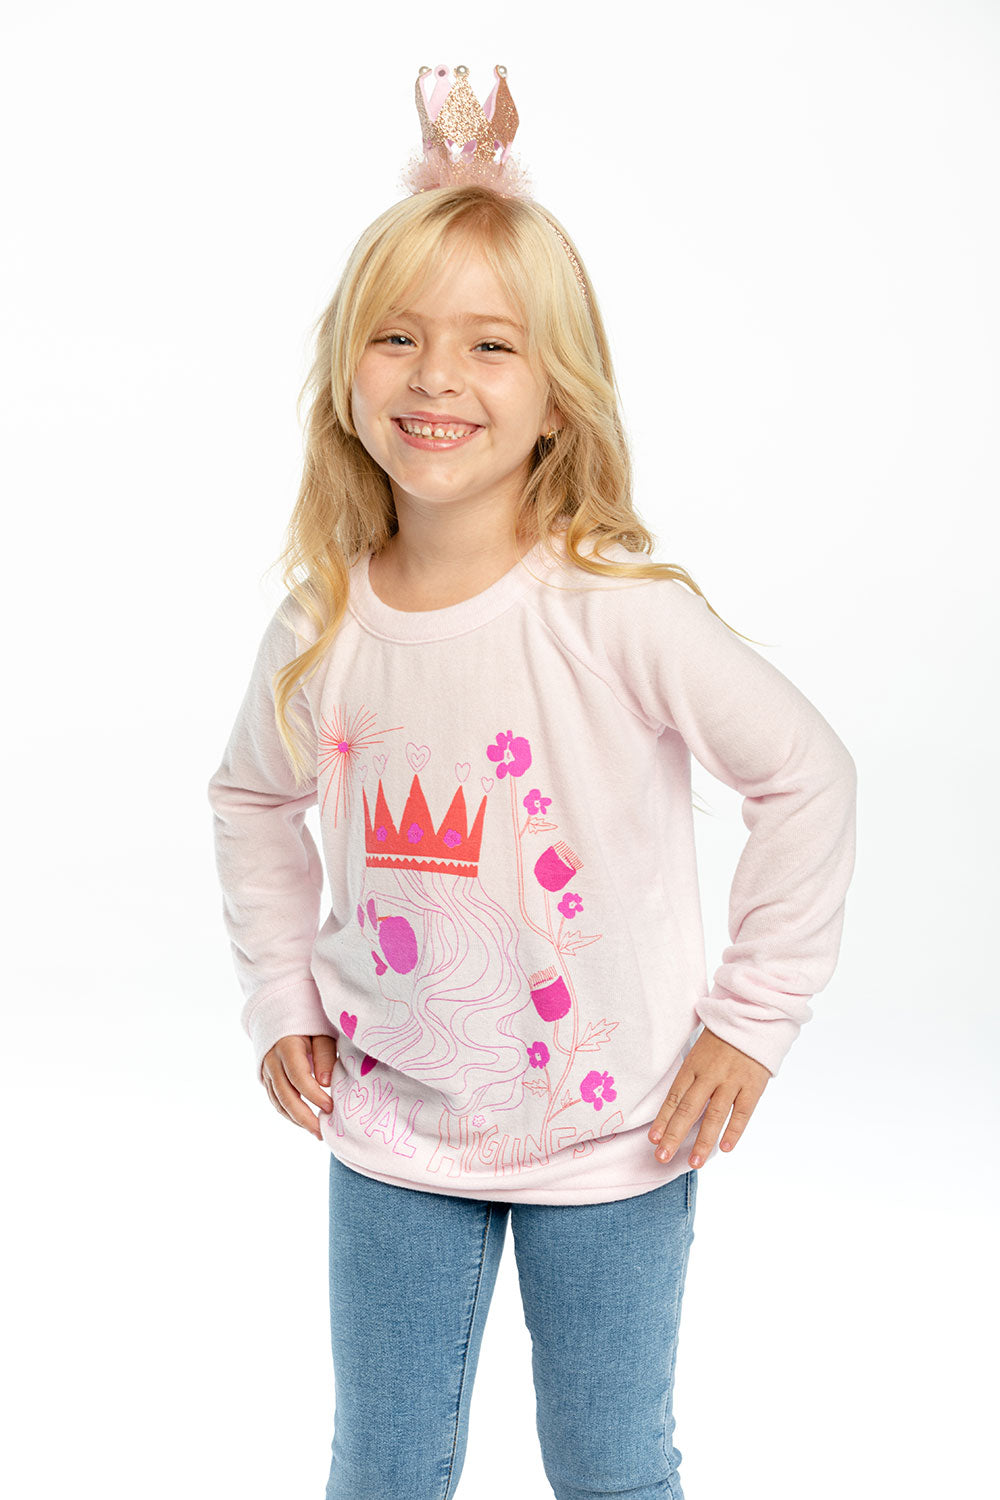 Royal Highness GIRLS chaserbrand4.myshopify.com